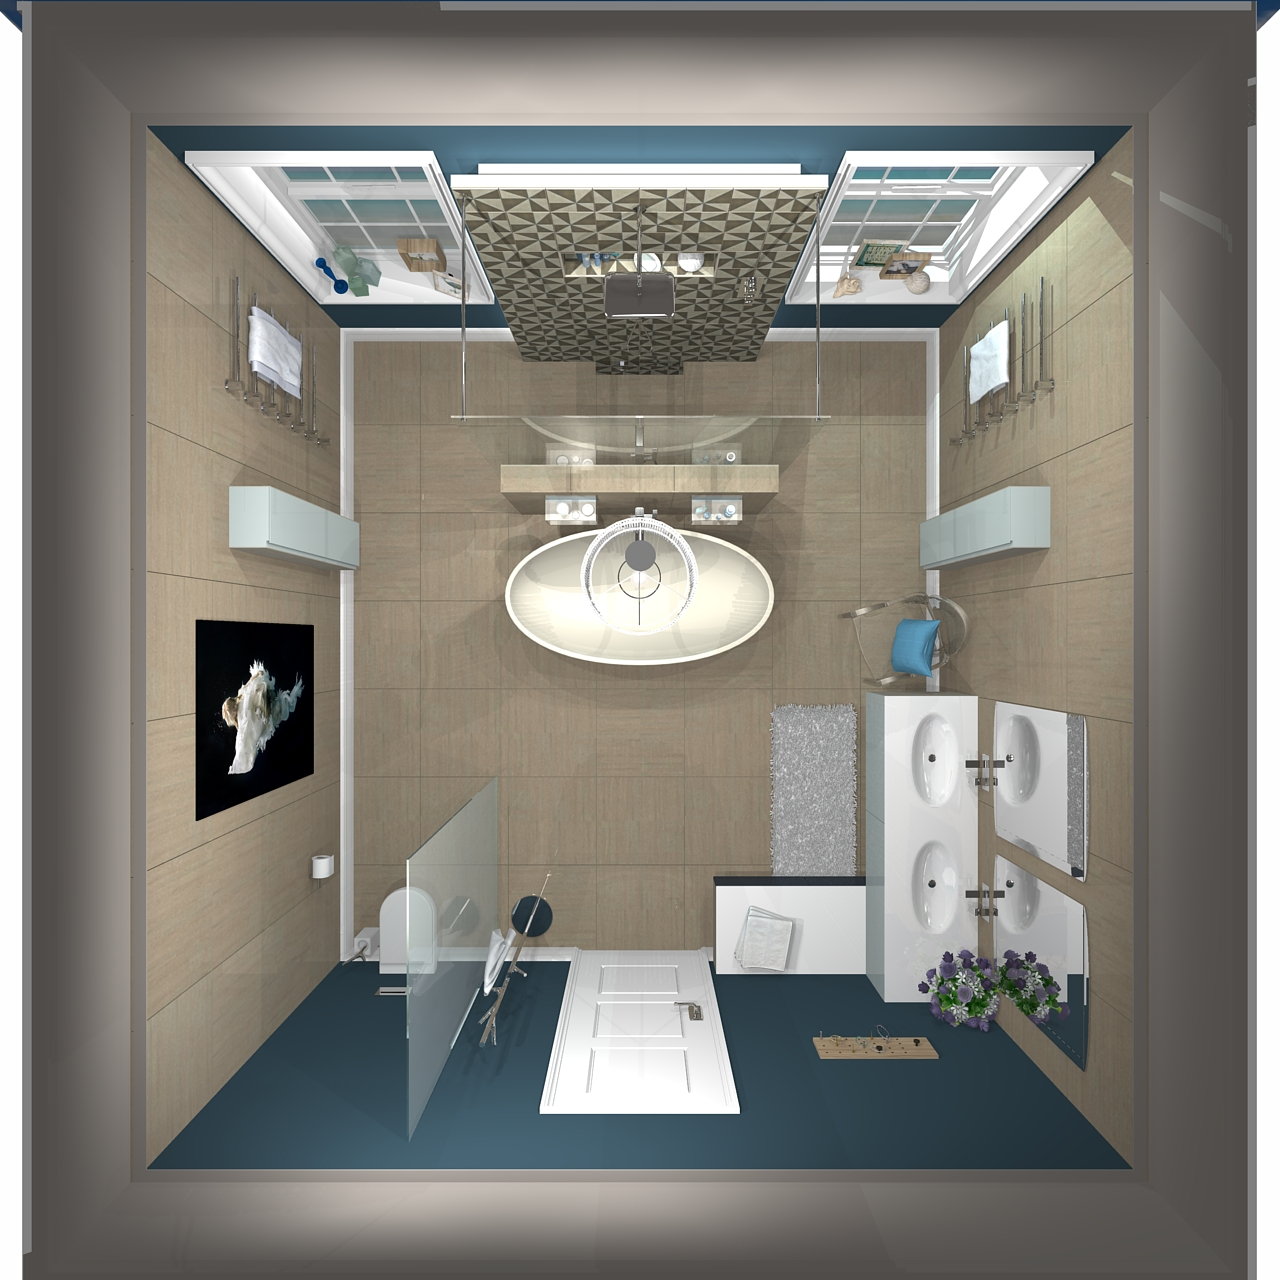 My c p hart dream bathroom in 3d nylon living for Bathroom planner 3d